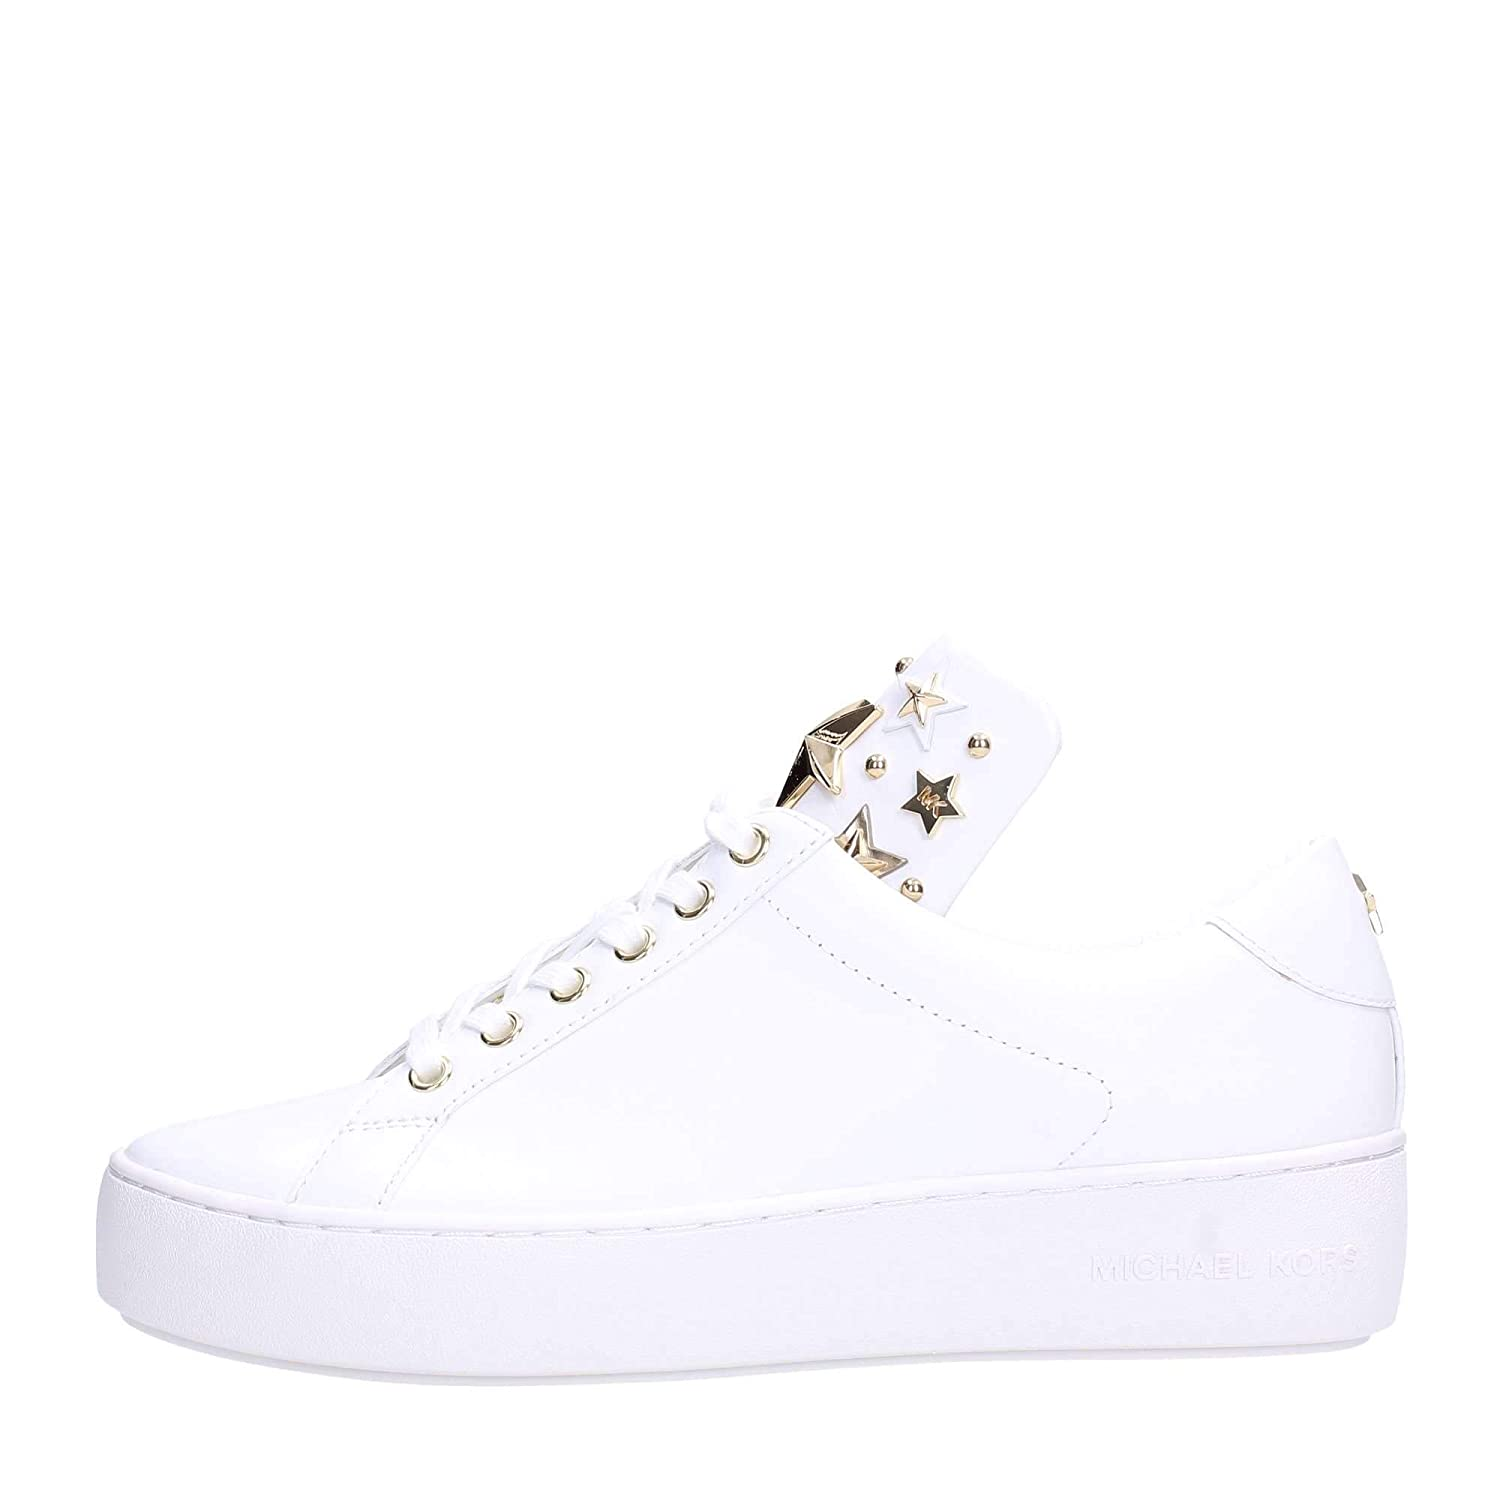 Michael Kors Mindy Lace Up Leather 43R9MNFS6L Optic White